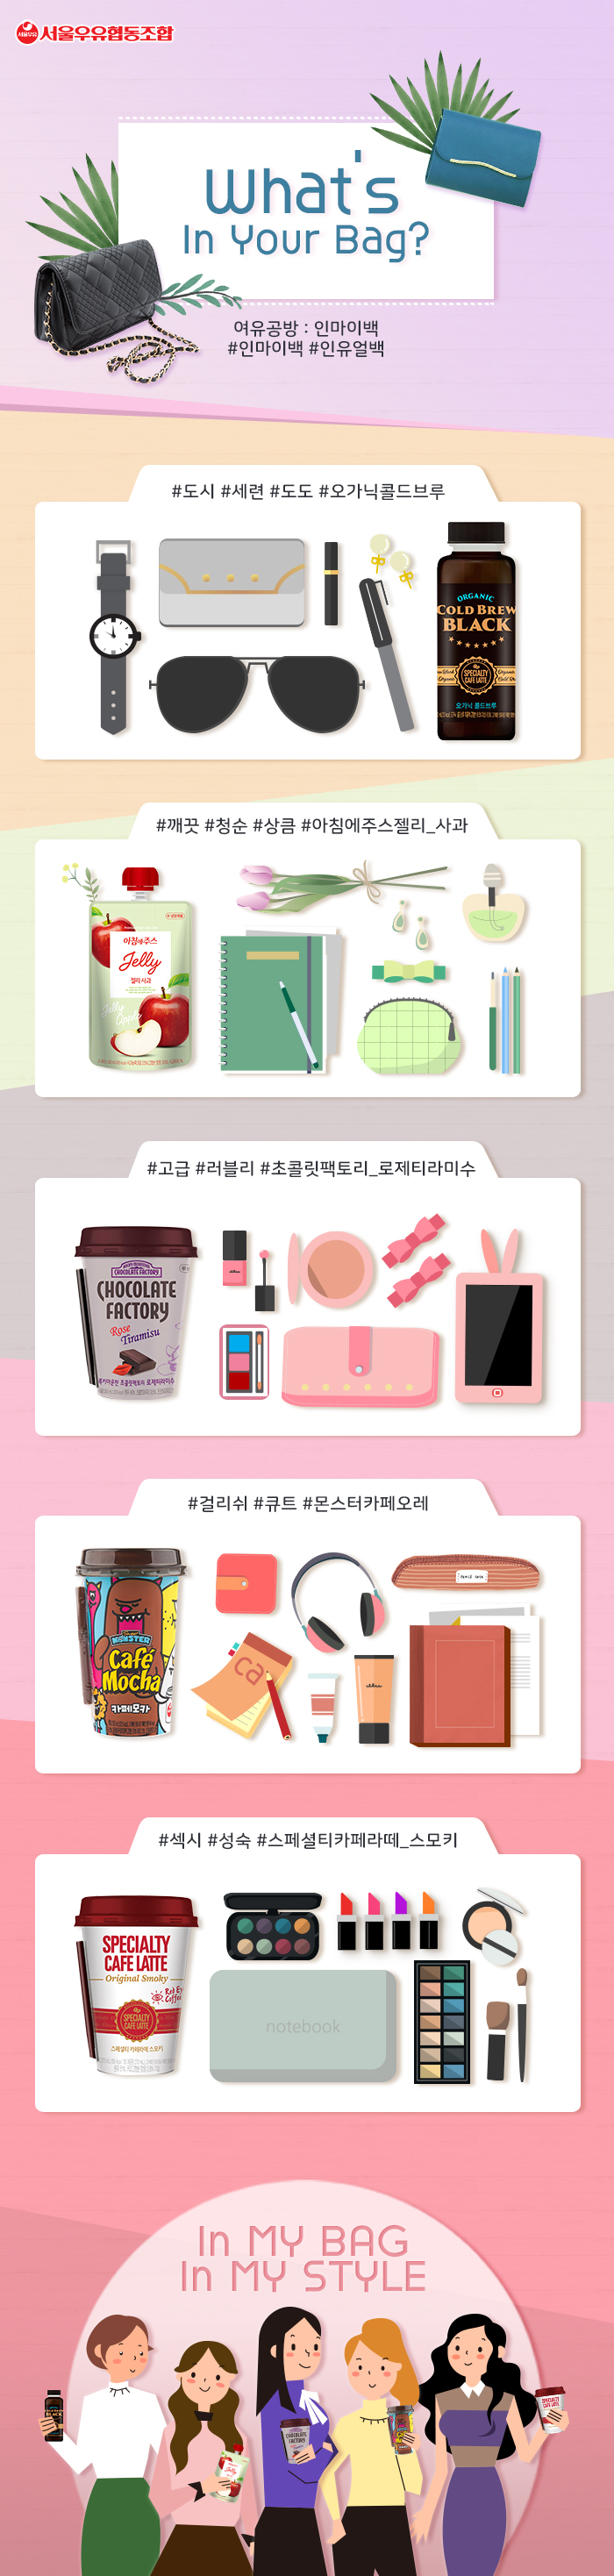 180126_what's_in_your_bag (2)